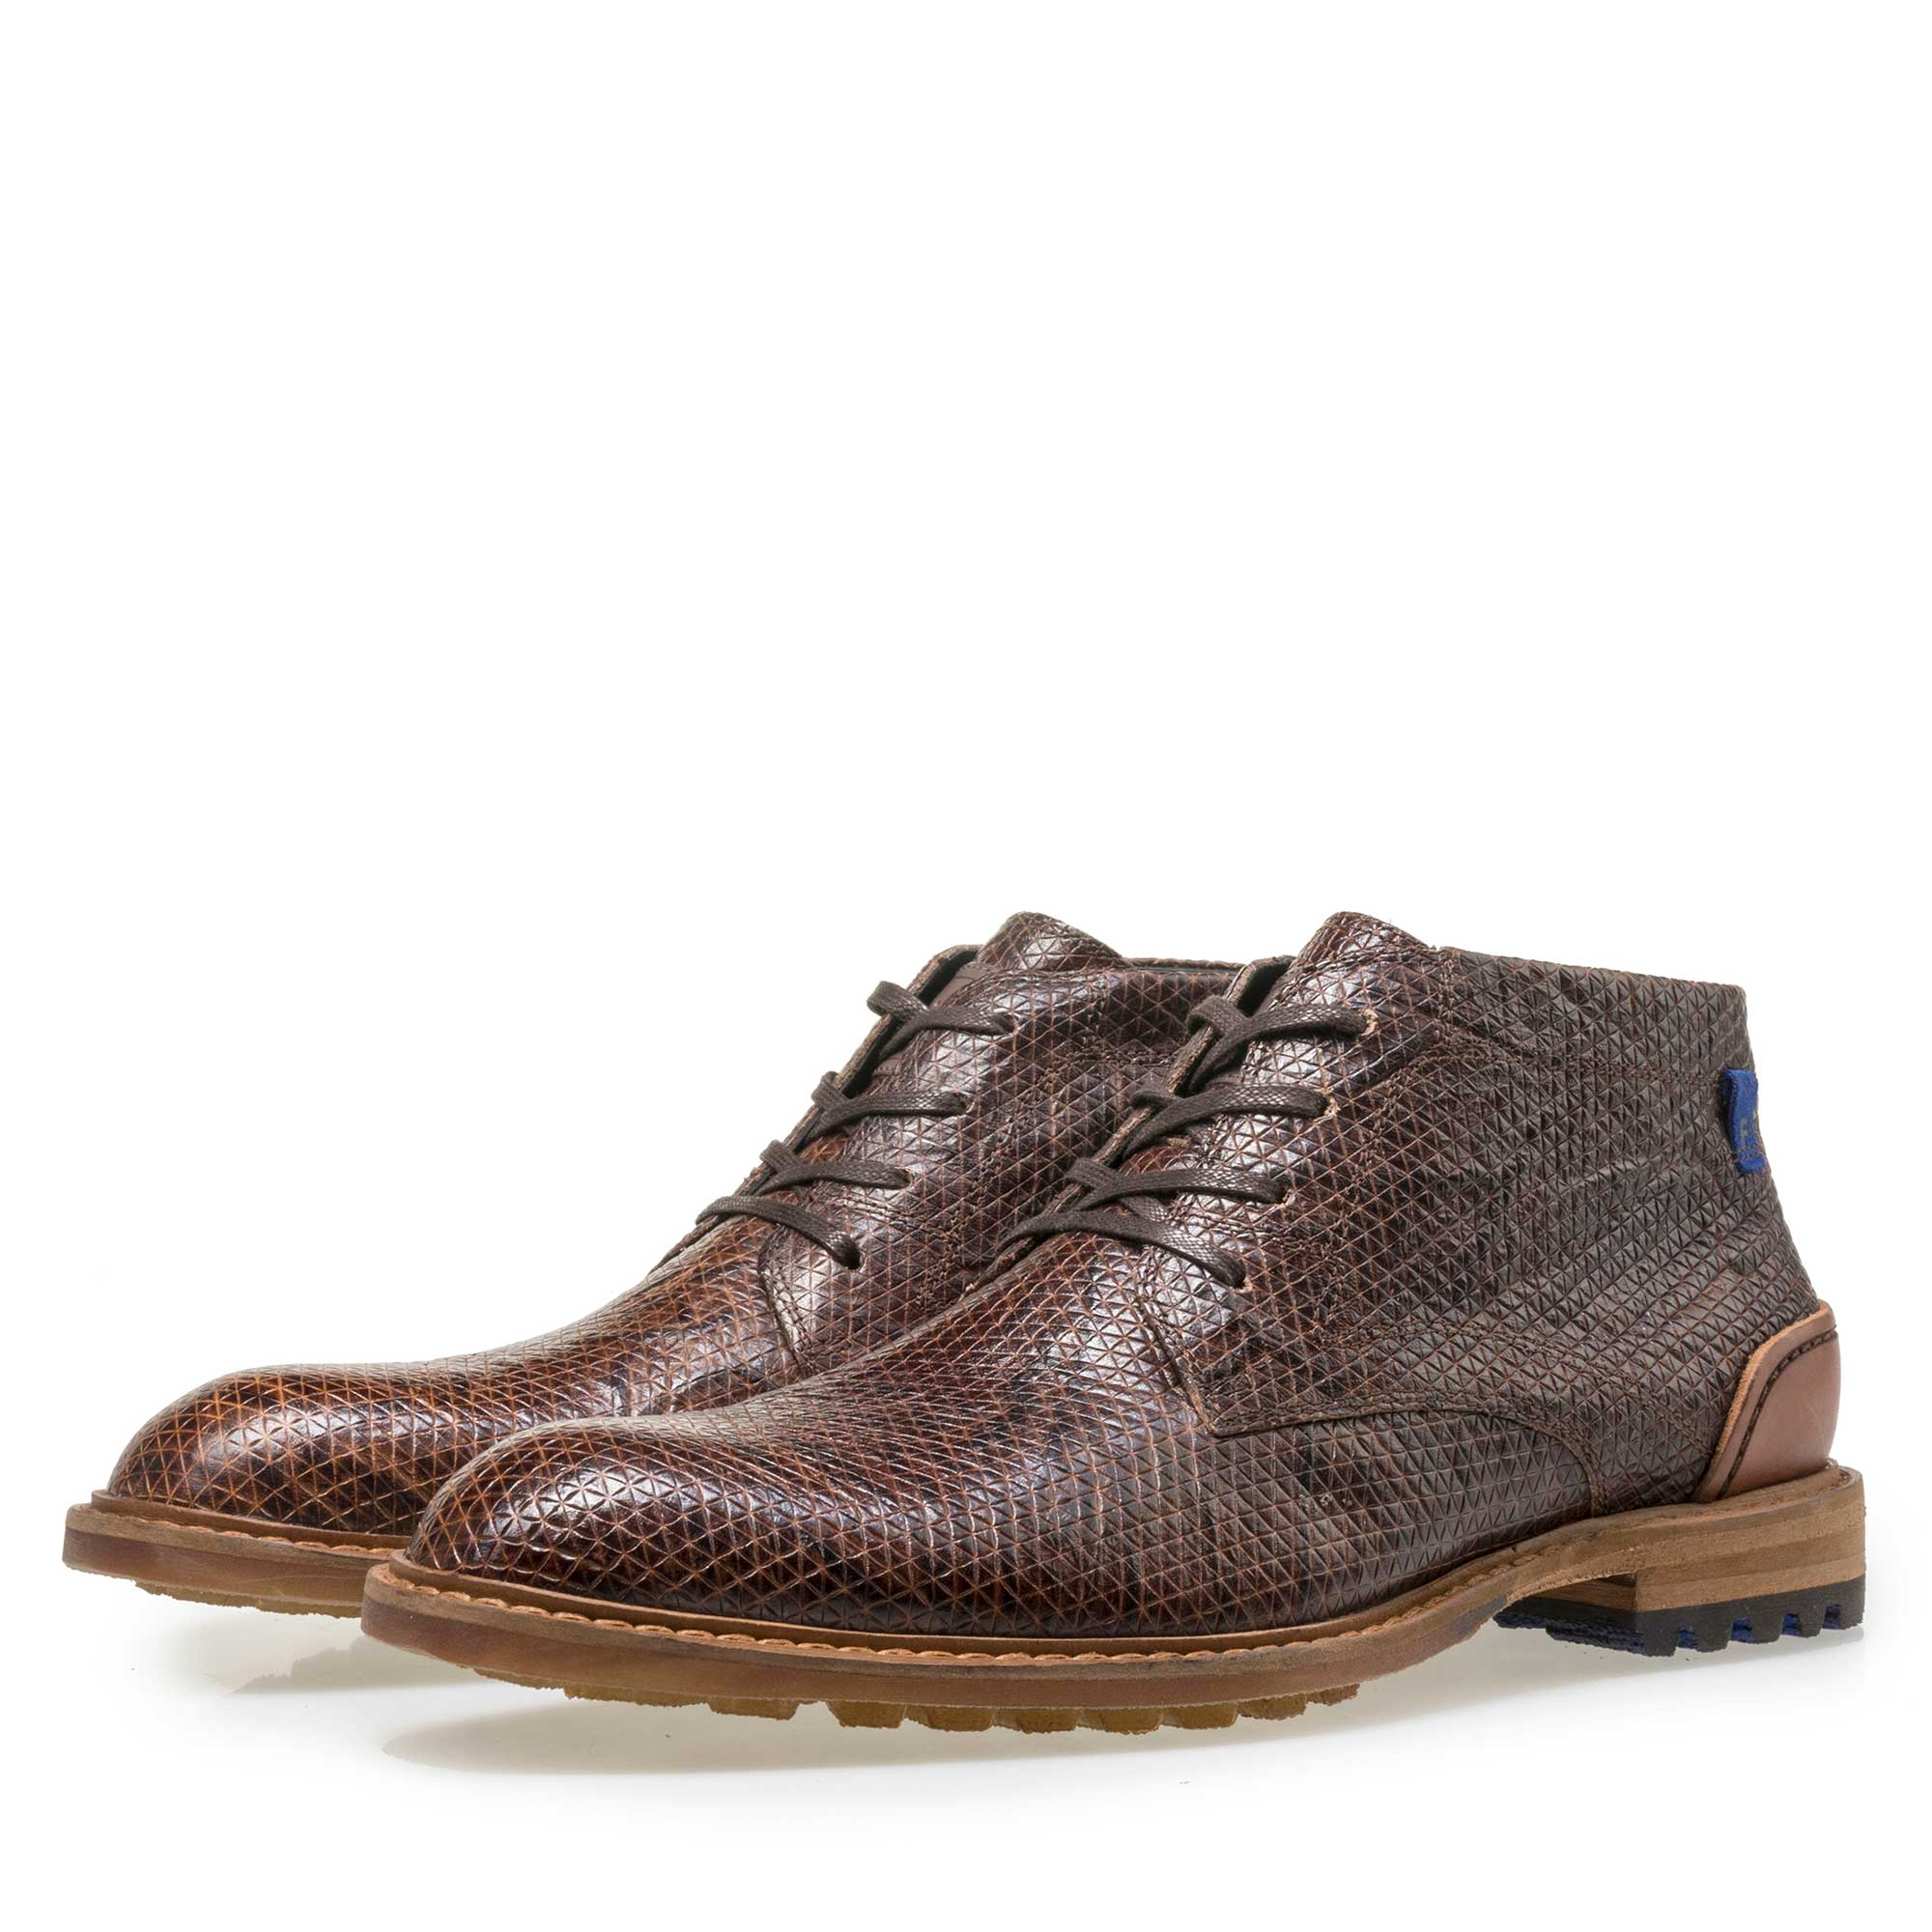 10786/20 - Floris van Bommel men's cognac-coloured leather lace boot finished with a snake print